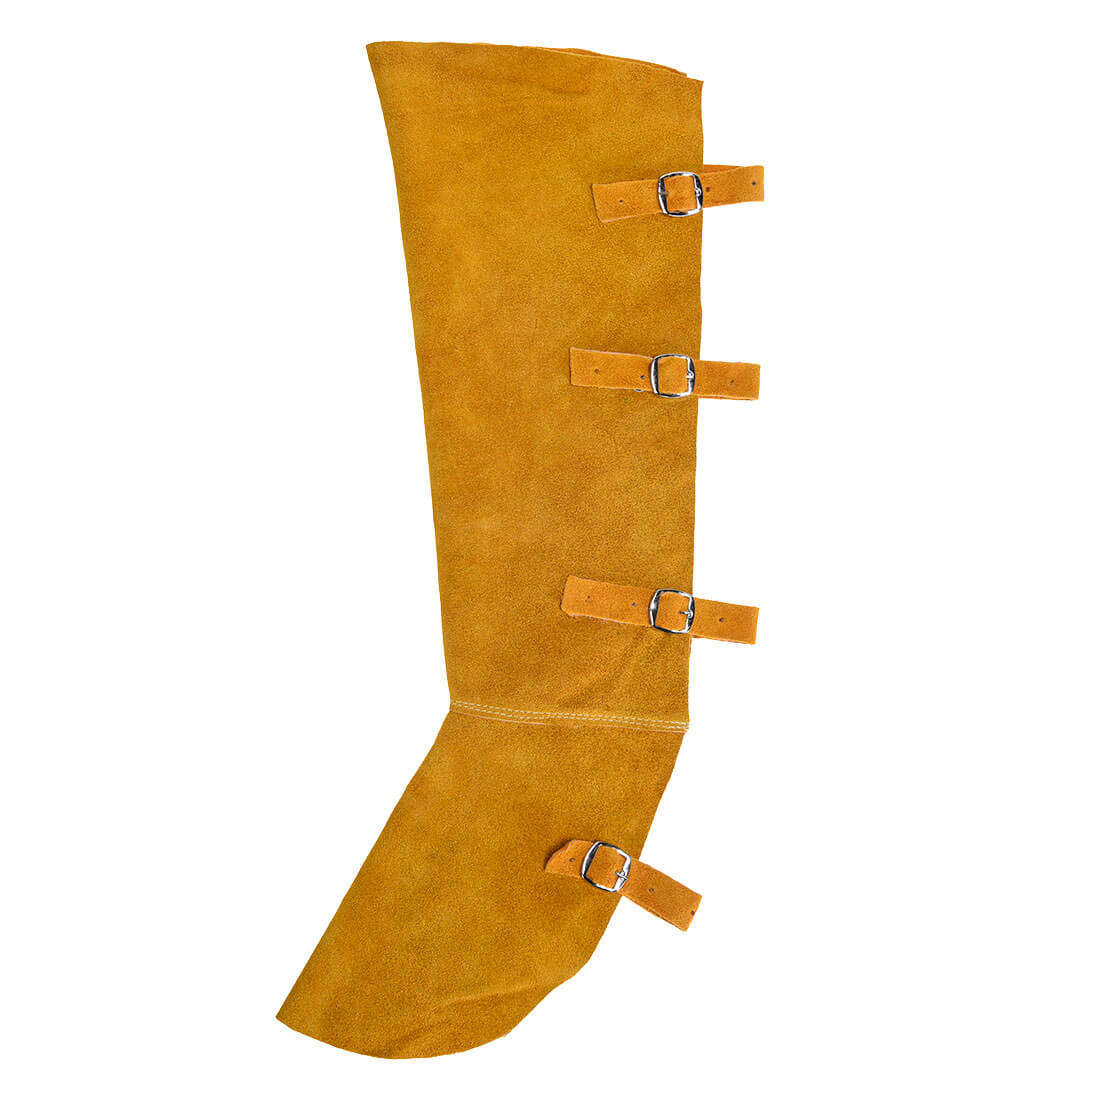 Image of Safe Welder Leather Welding Boots Covers